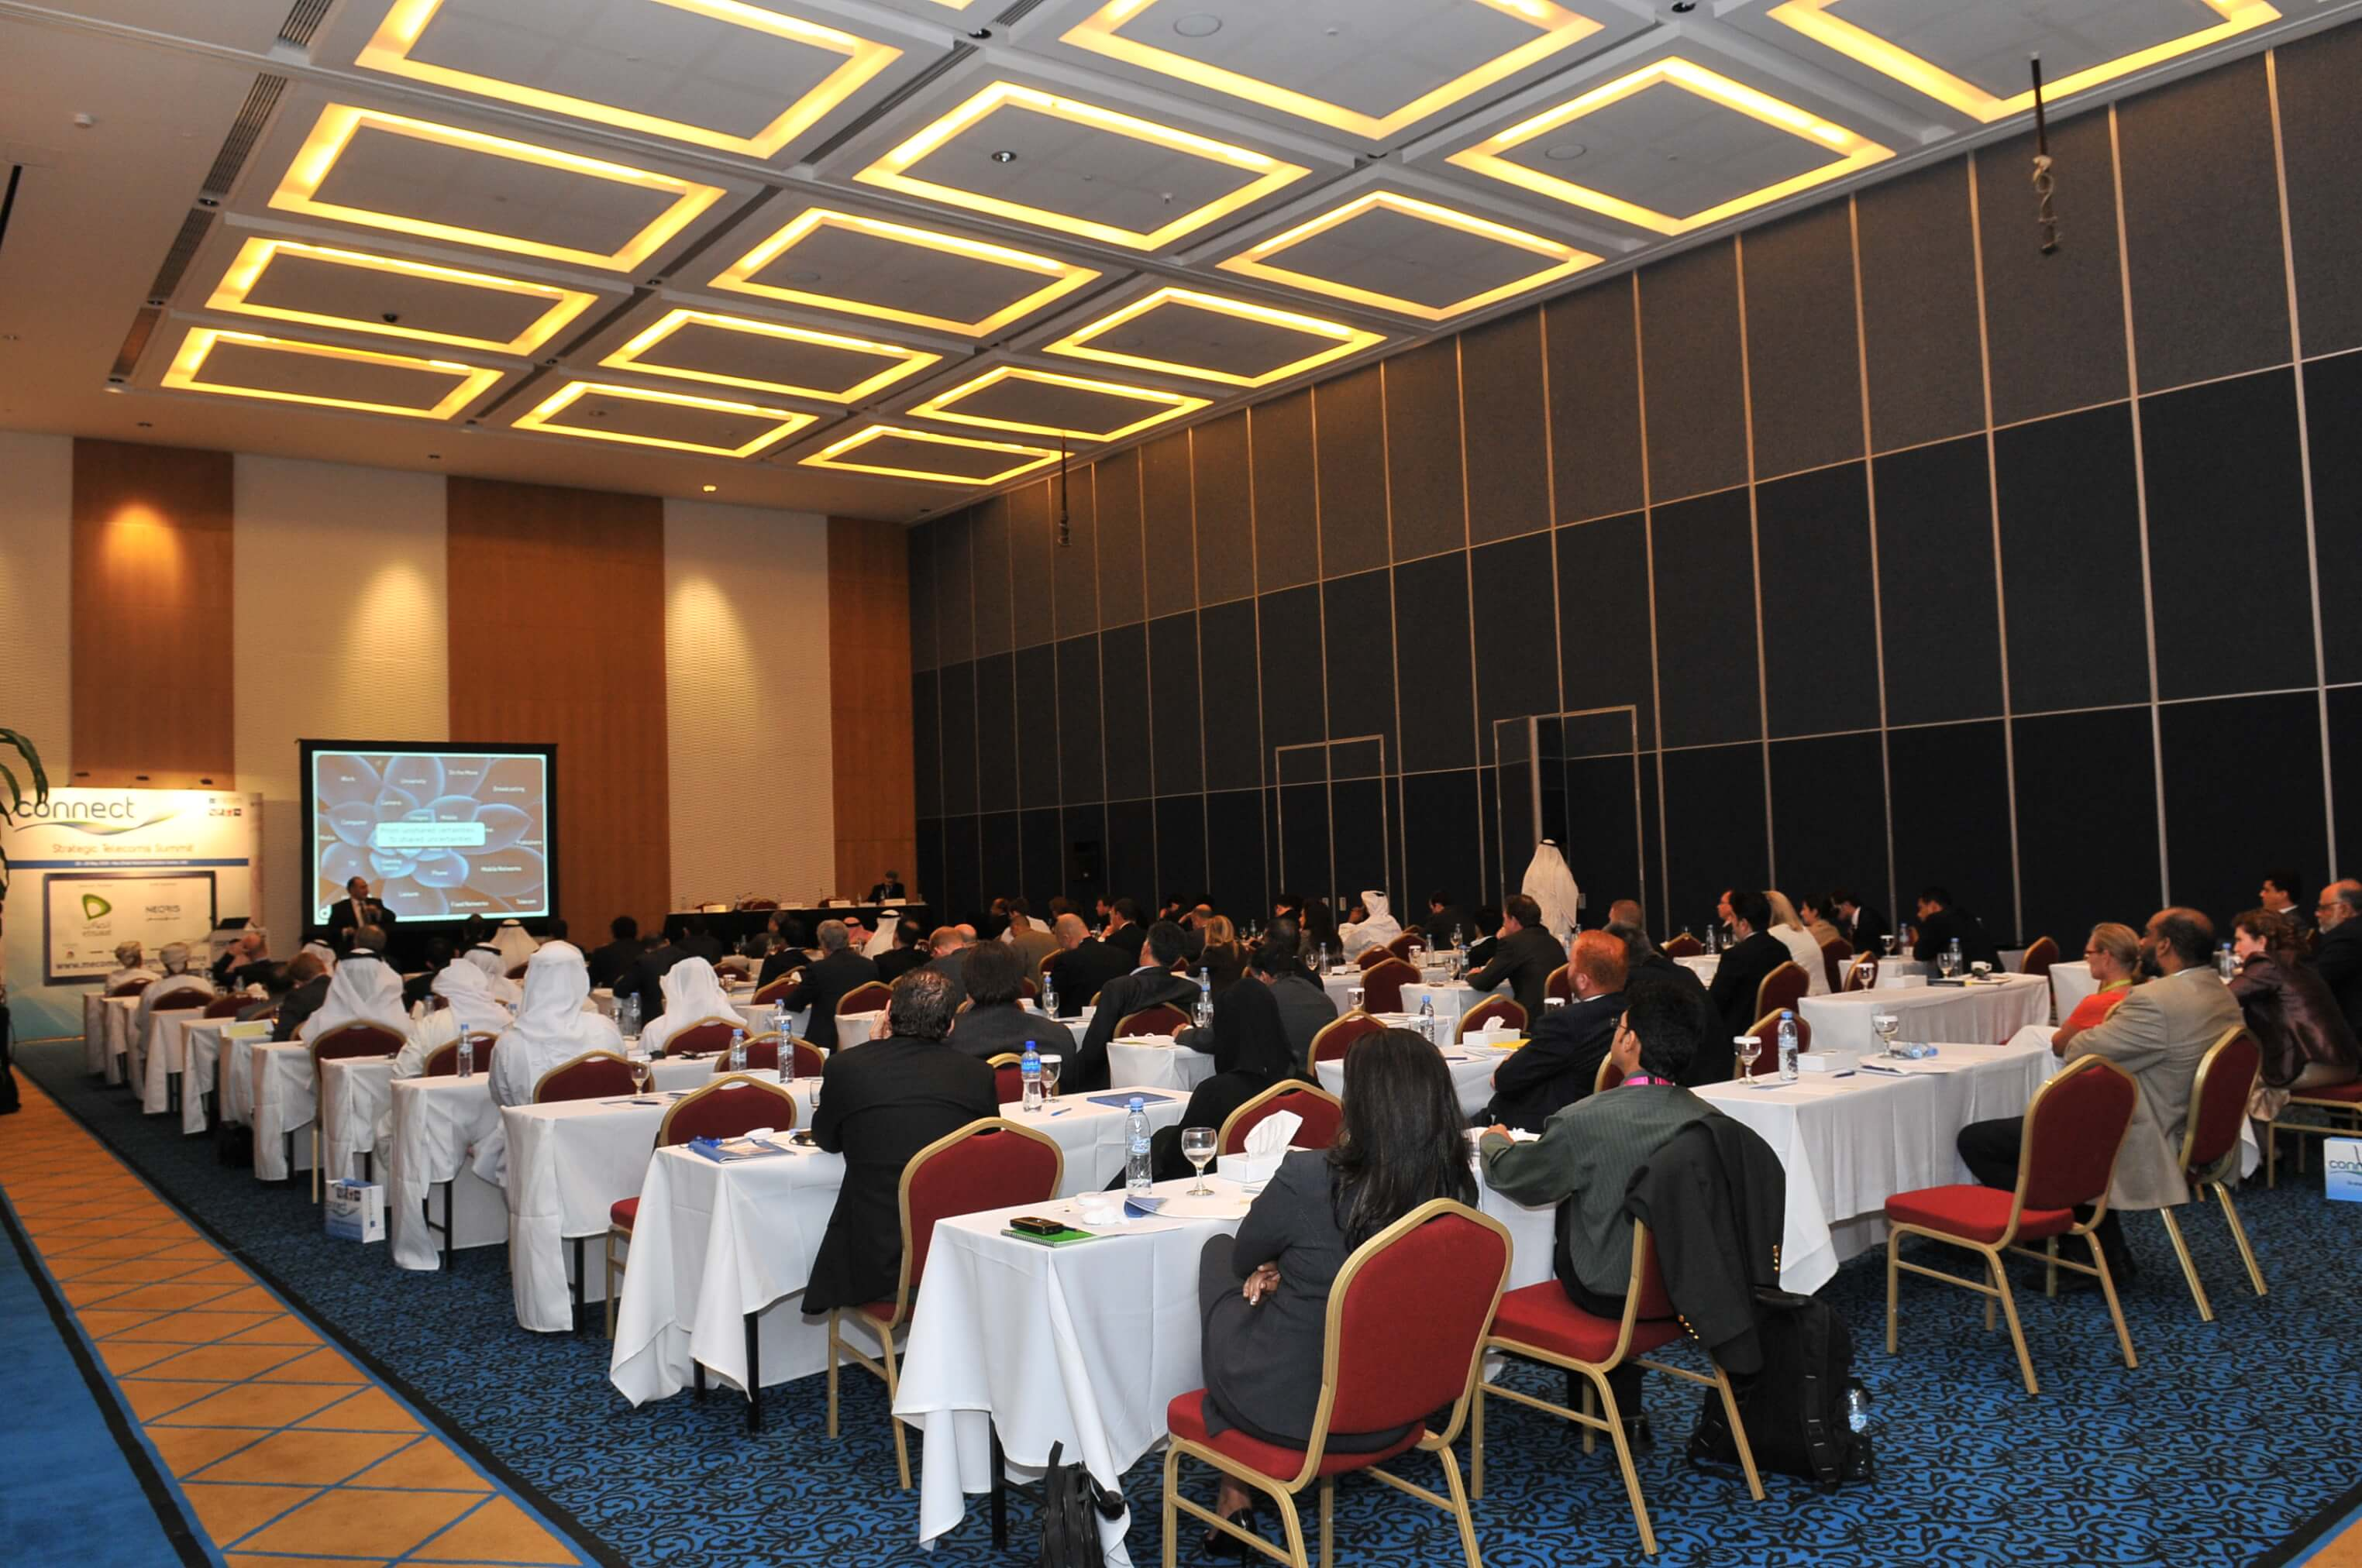 Building 12 International Thought Leadership Conferences in the UAE